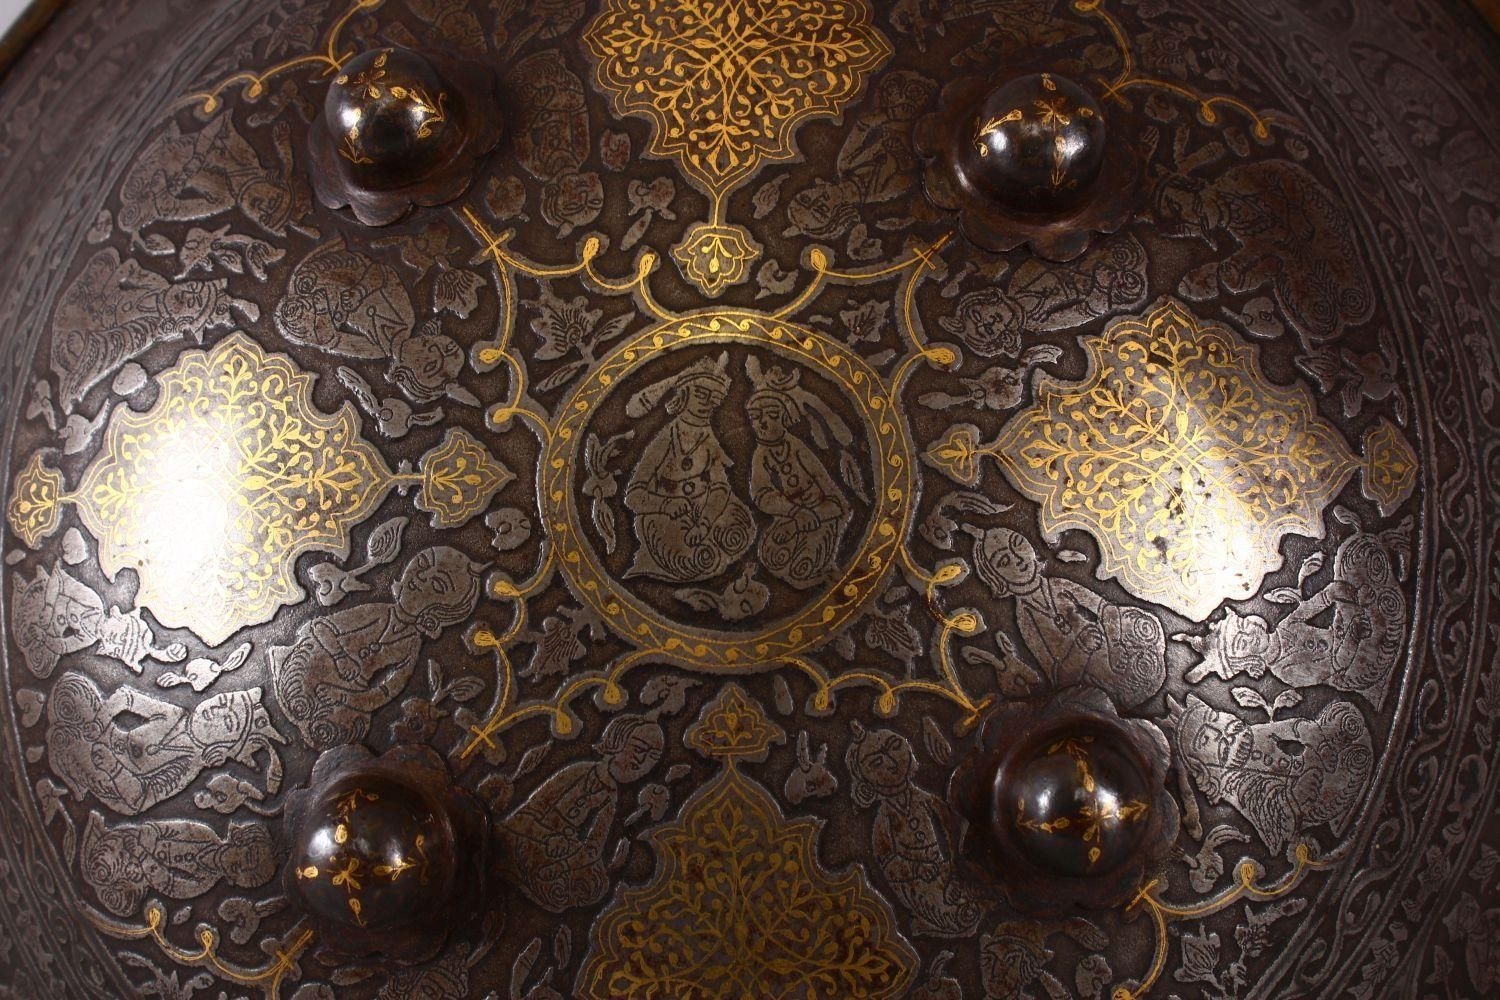 A LARGE 19TH CENTURY PERSIAN GILT DECORATED STEEL SHIELD, with carved decoration of figures, bands - Image 2 of 12